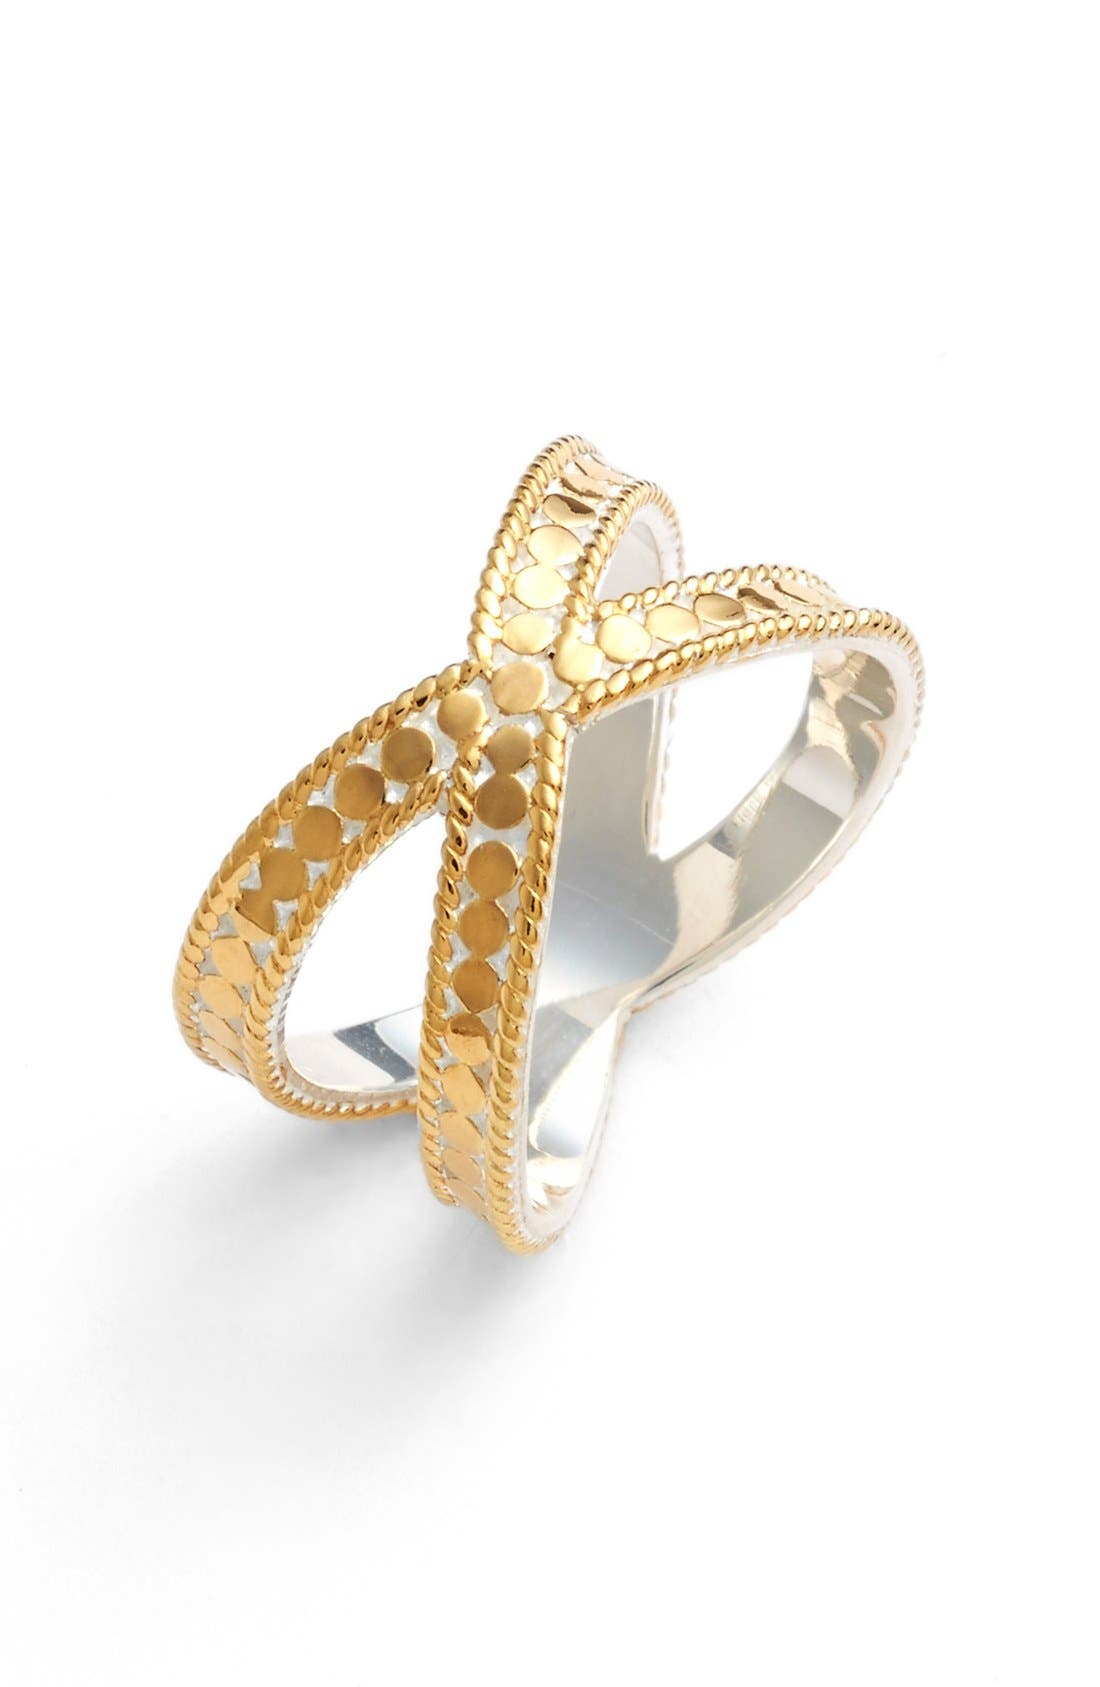 'Gili' Crossover Ring,                         Main,                         color, Gold/ Silver